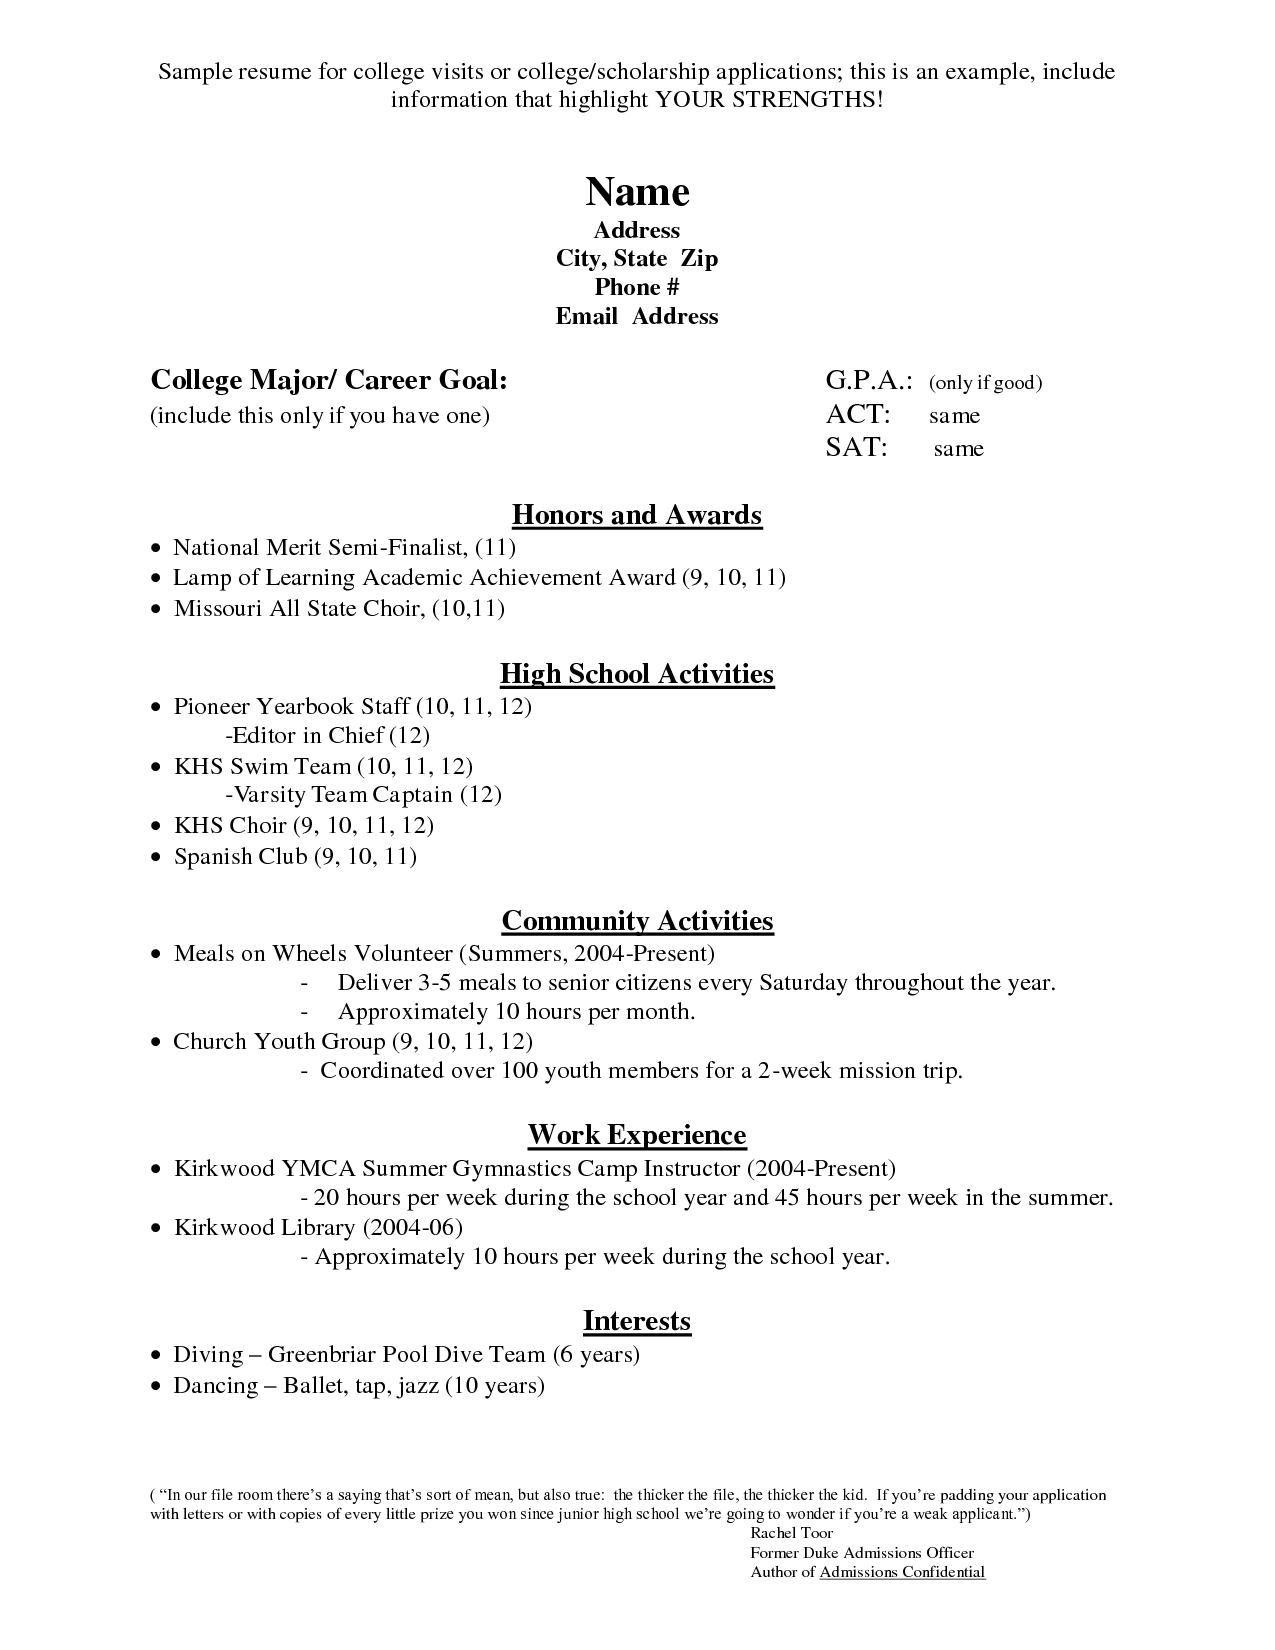 high school resume for scholarships